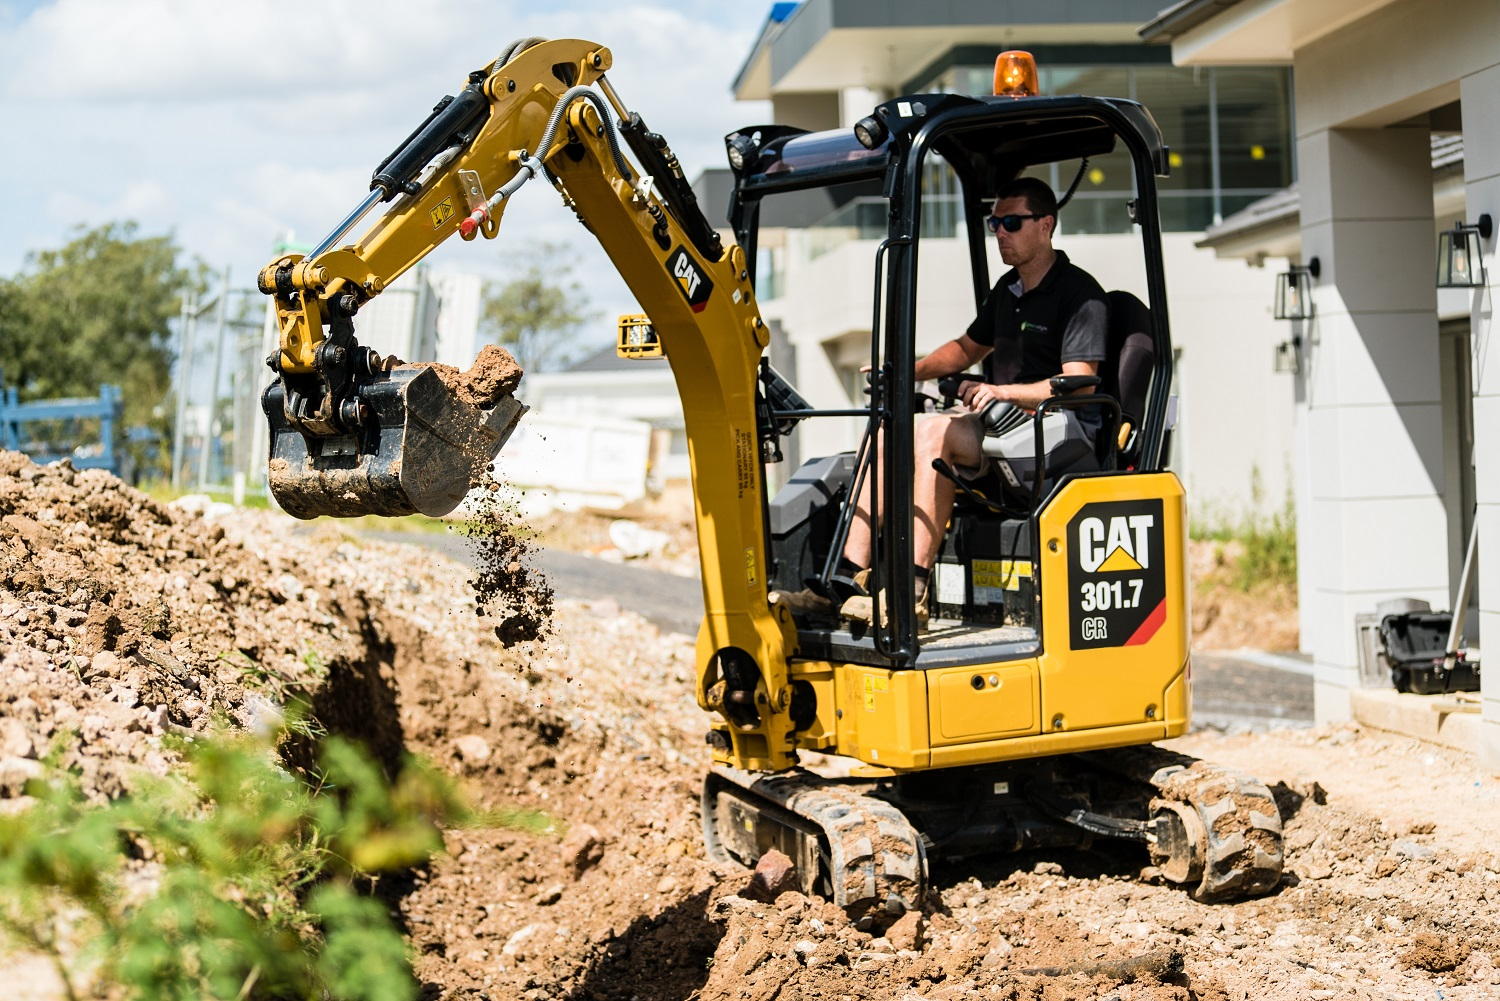 Own a Cat Mini Excavator for less